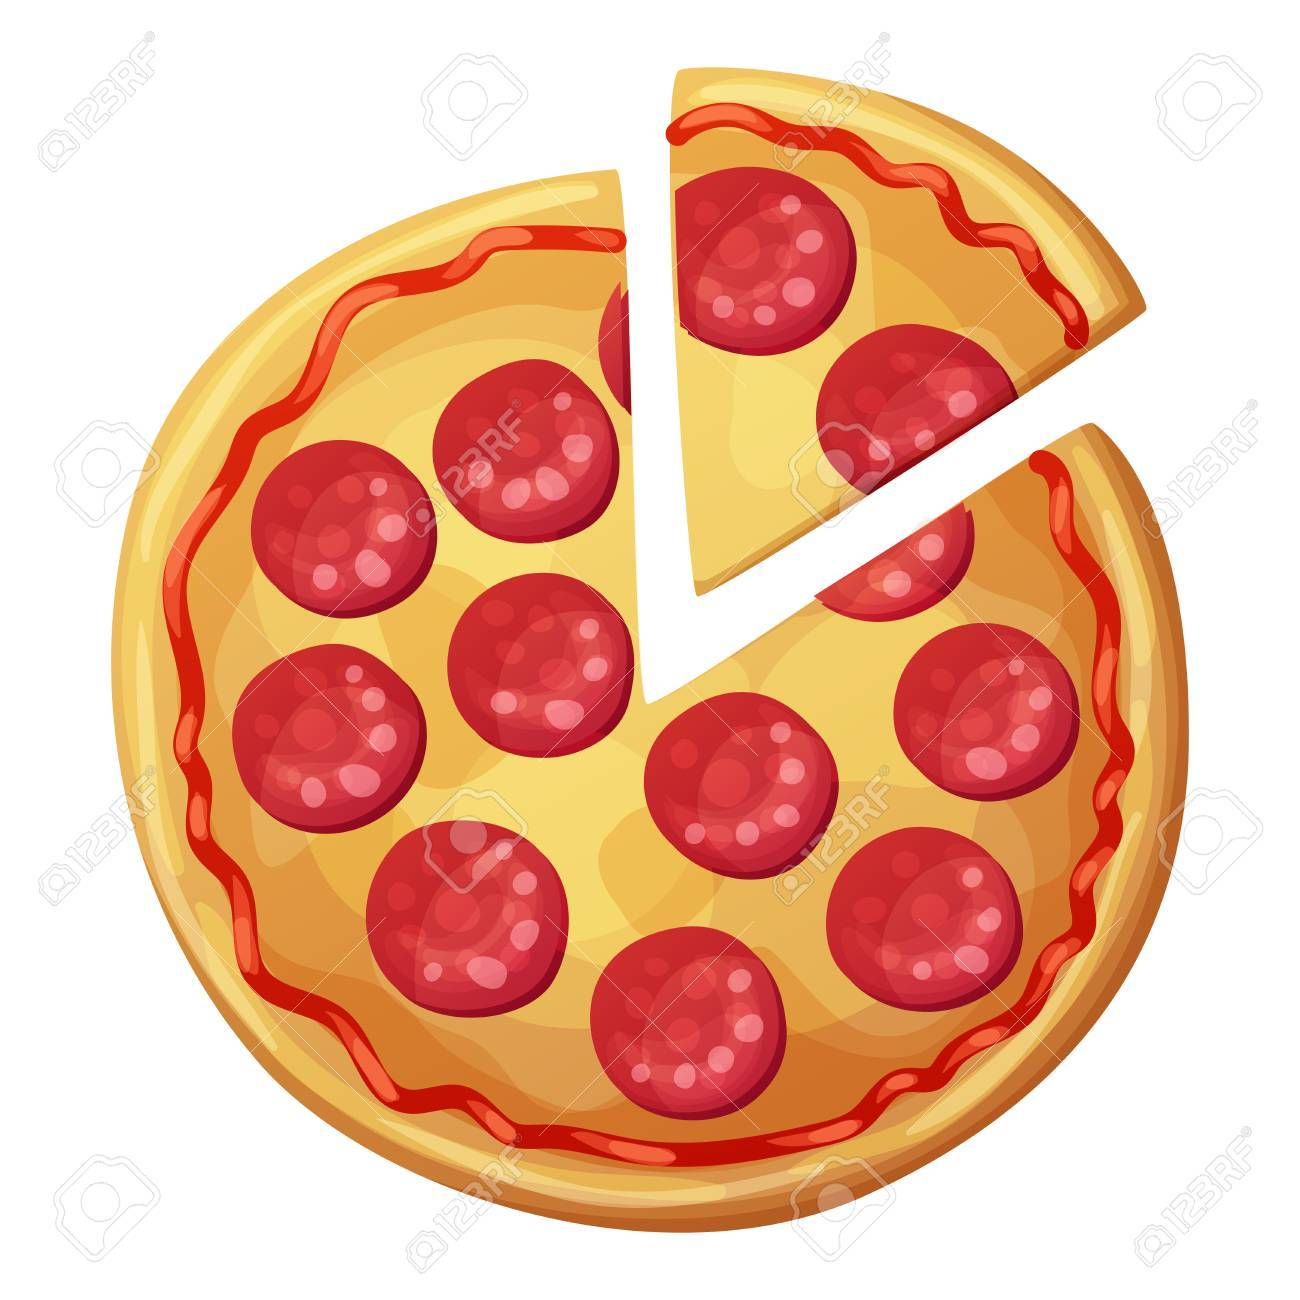 Pepperoni pizza with sausages top view. Cartoon vector food illustration isolated on white background - 69878133